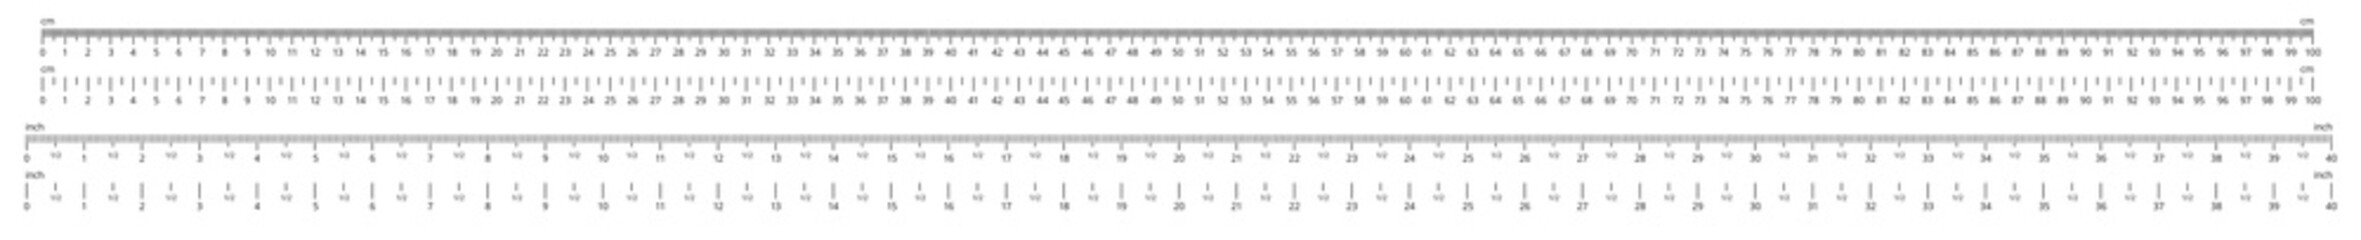 Ruler scale. Measurable scales, 100 centimeters and 40 inches rulers vector illustration